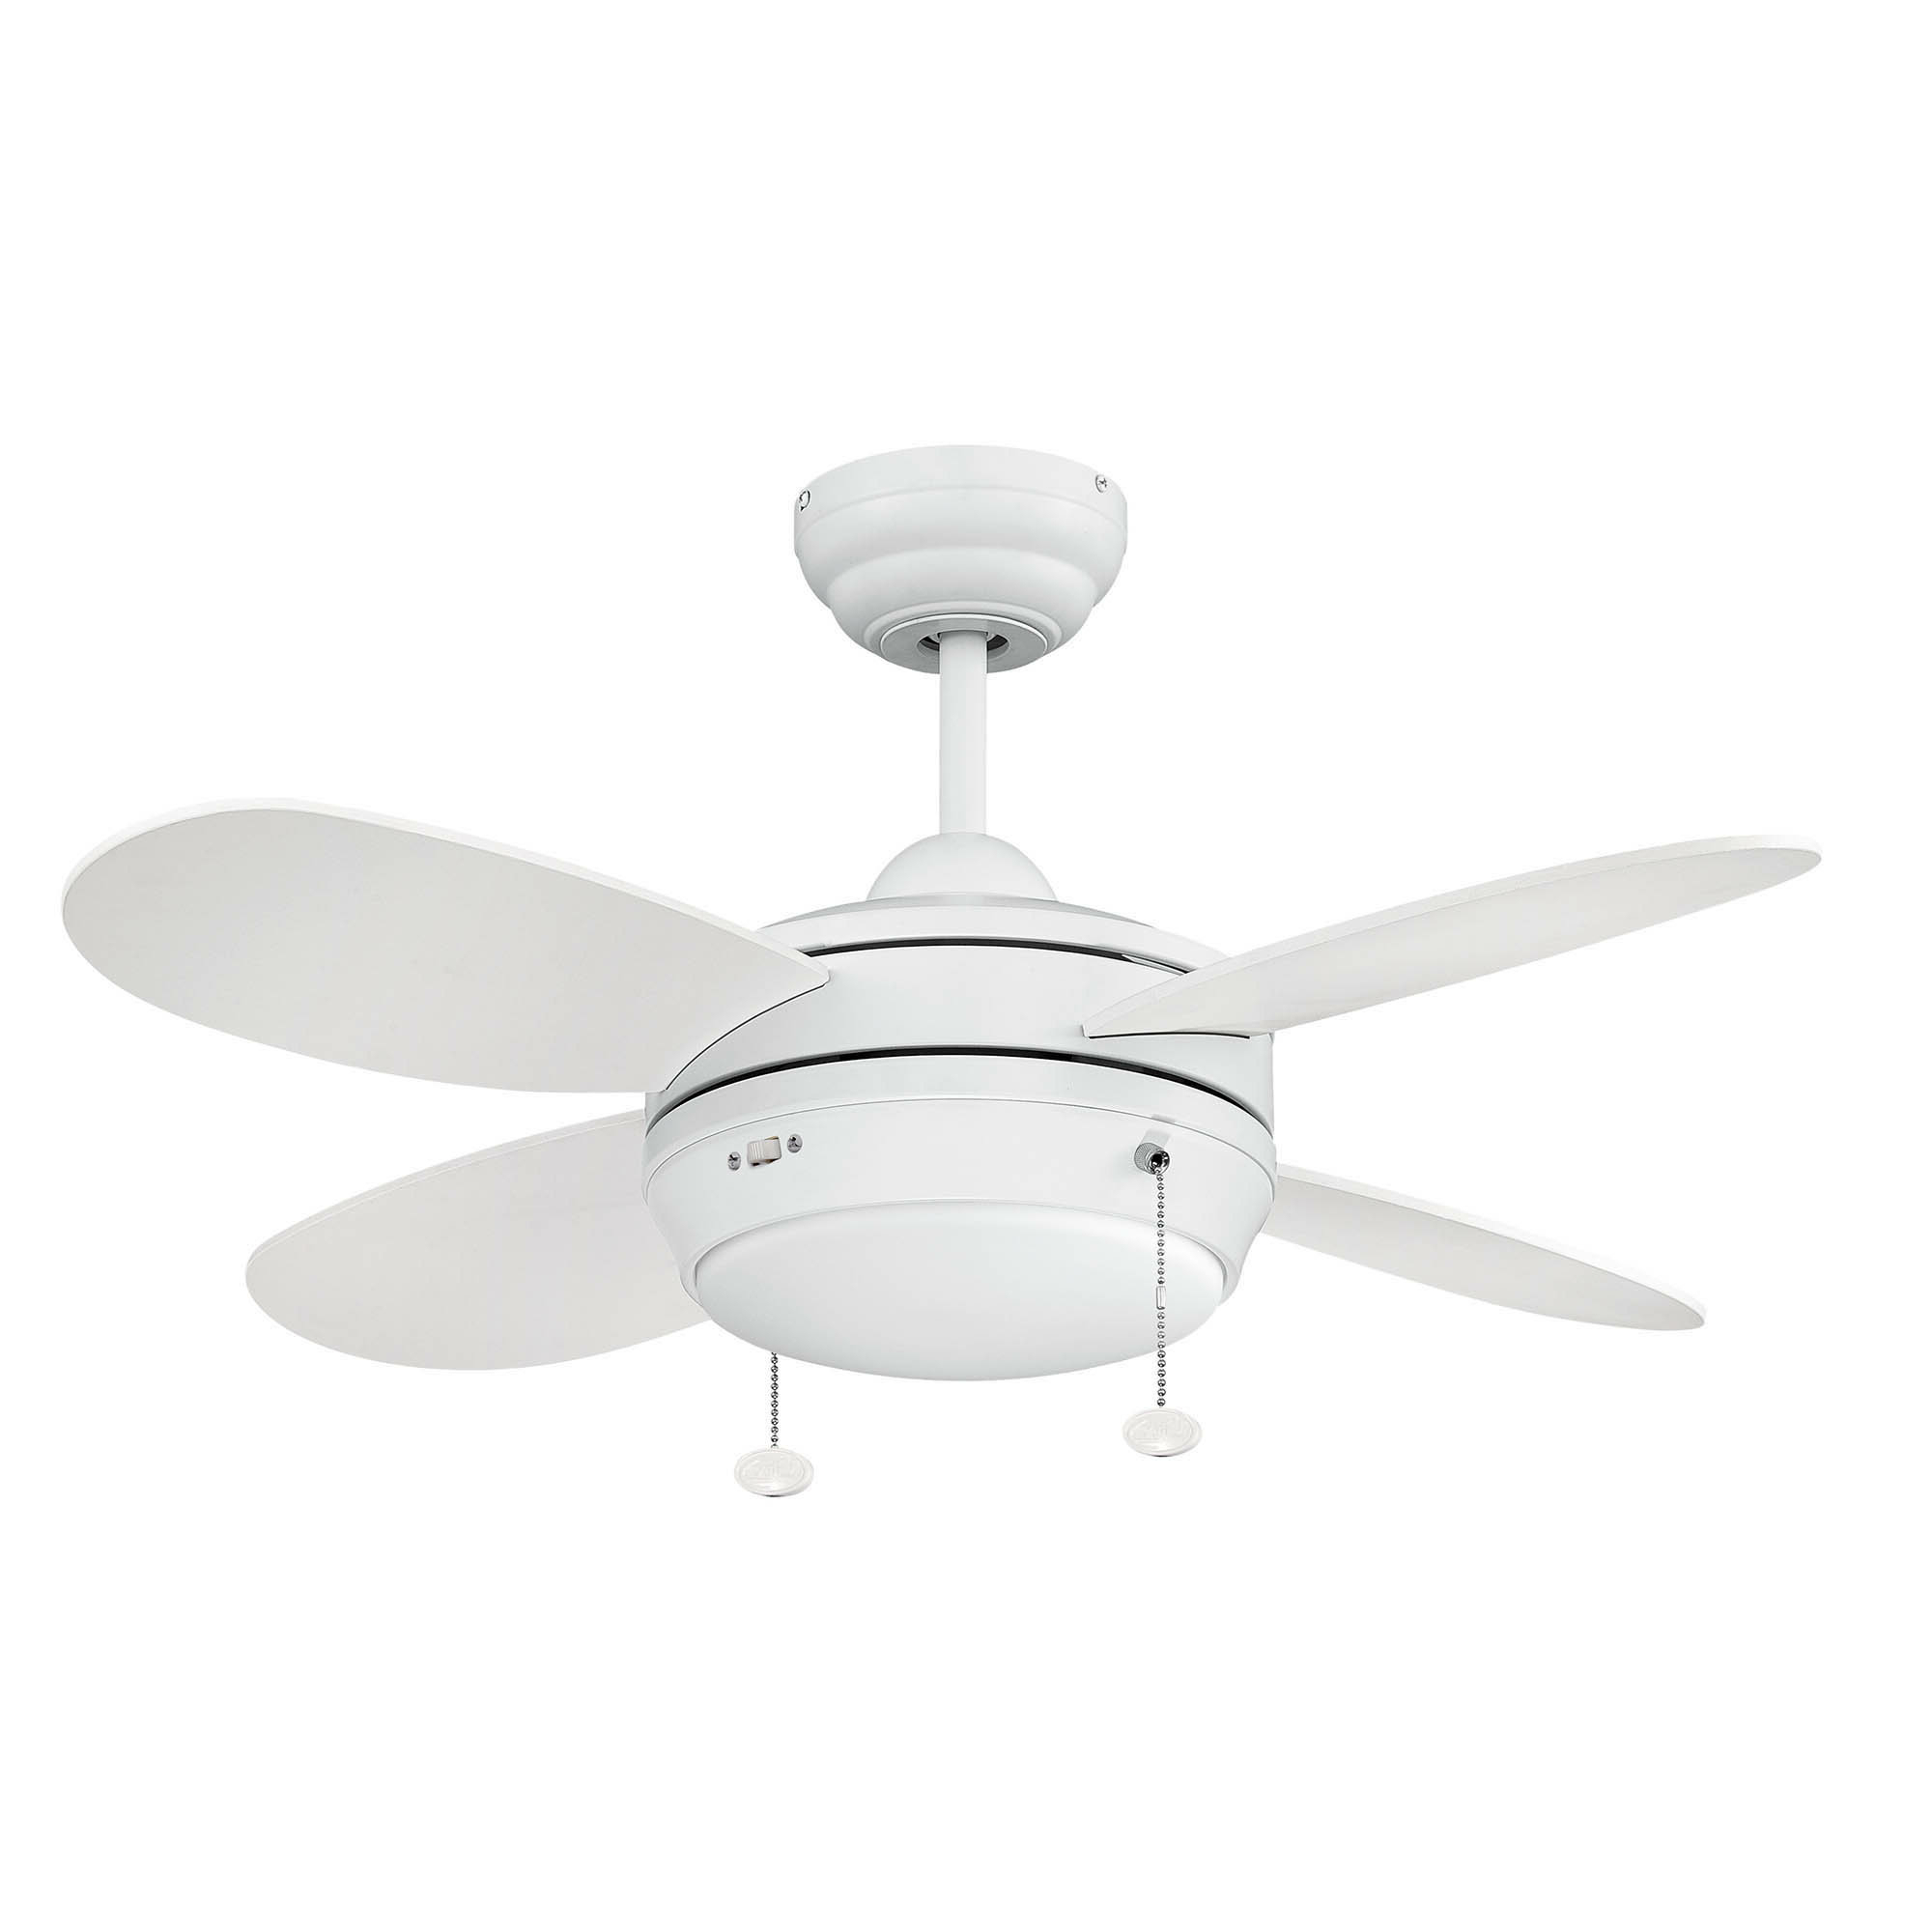 "36"" Kopnisky Dual Mount 4 Blade Ceiling Fan, Light Kit Included Intended For Popular Stewardson 4 Blade Ceiling Fans (View 11 of 20)"